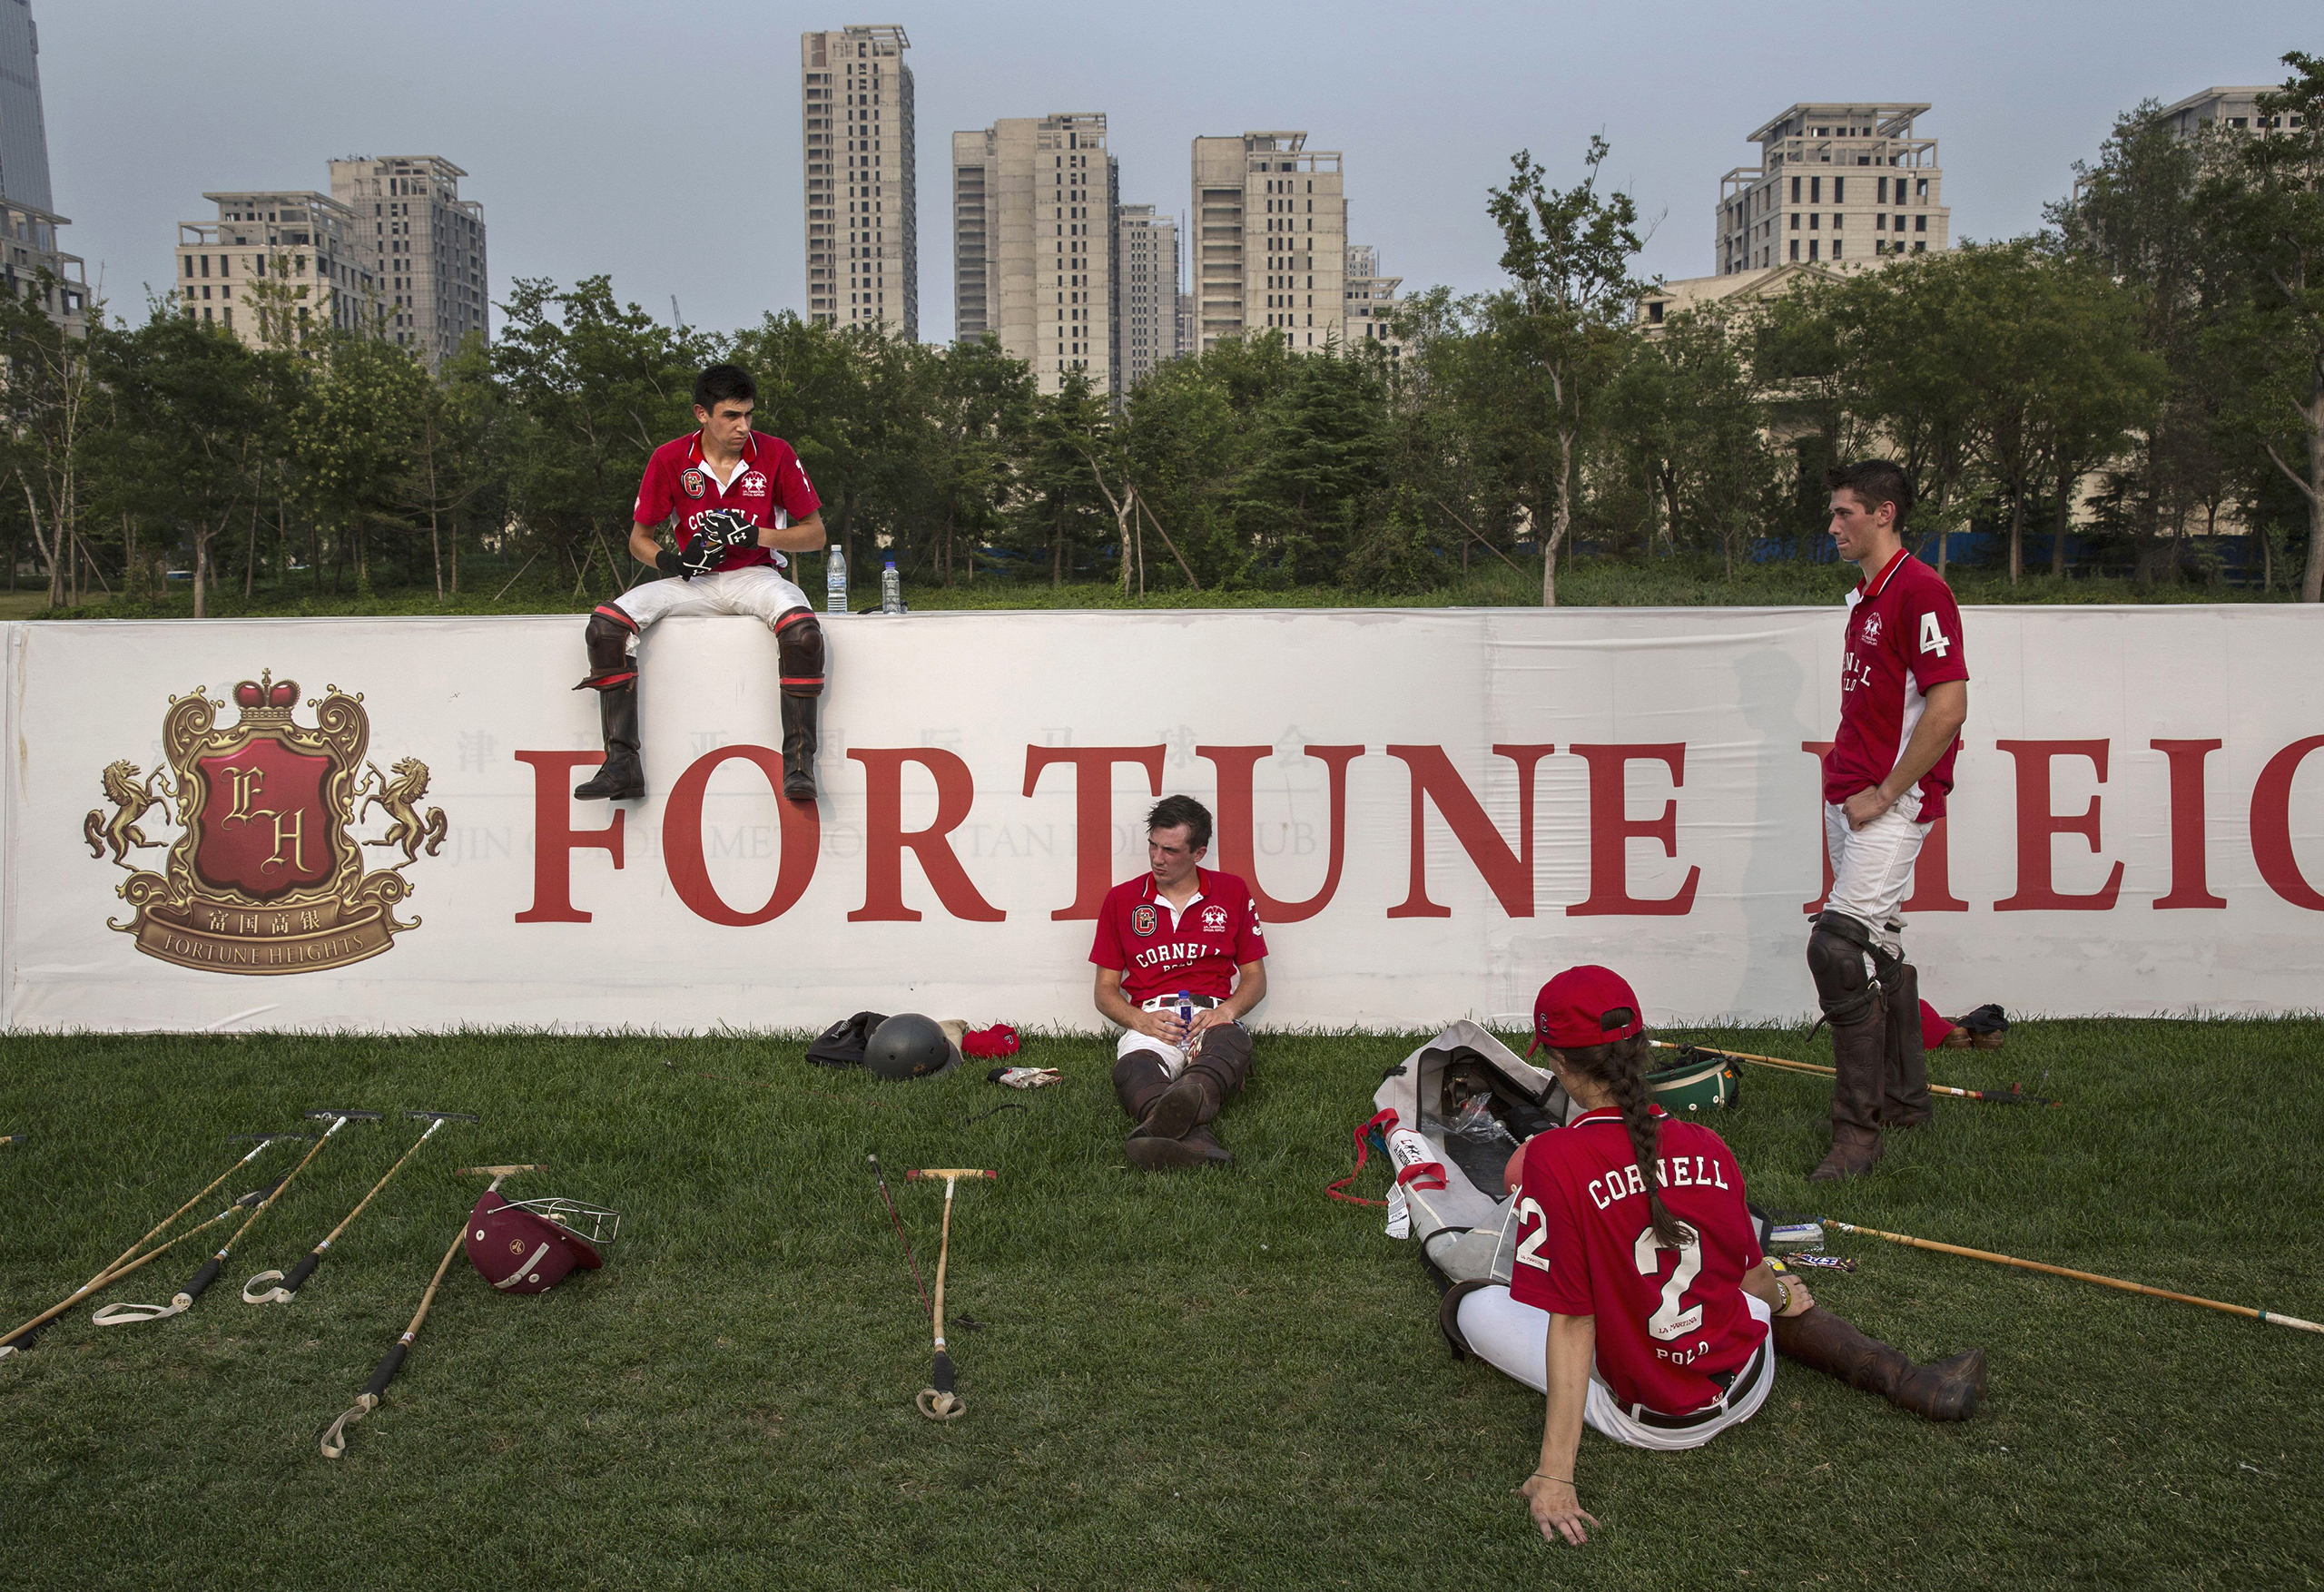 Players from the Cornell University polo team rest during a break in a match during the intervarsity tournament held at the Tianjin Goldin Metropolitan Polo Club in Tianjin, China, on July 17, 2016.